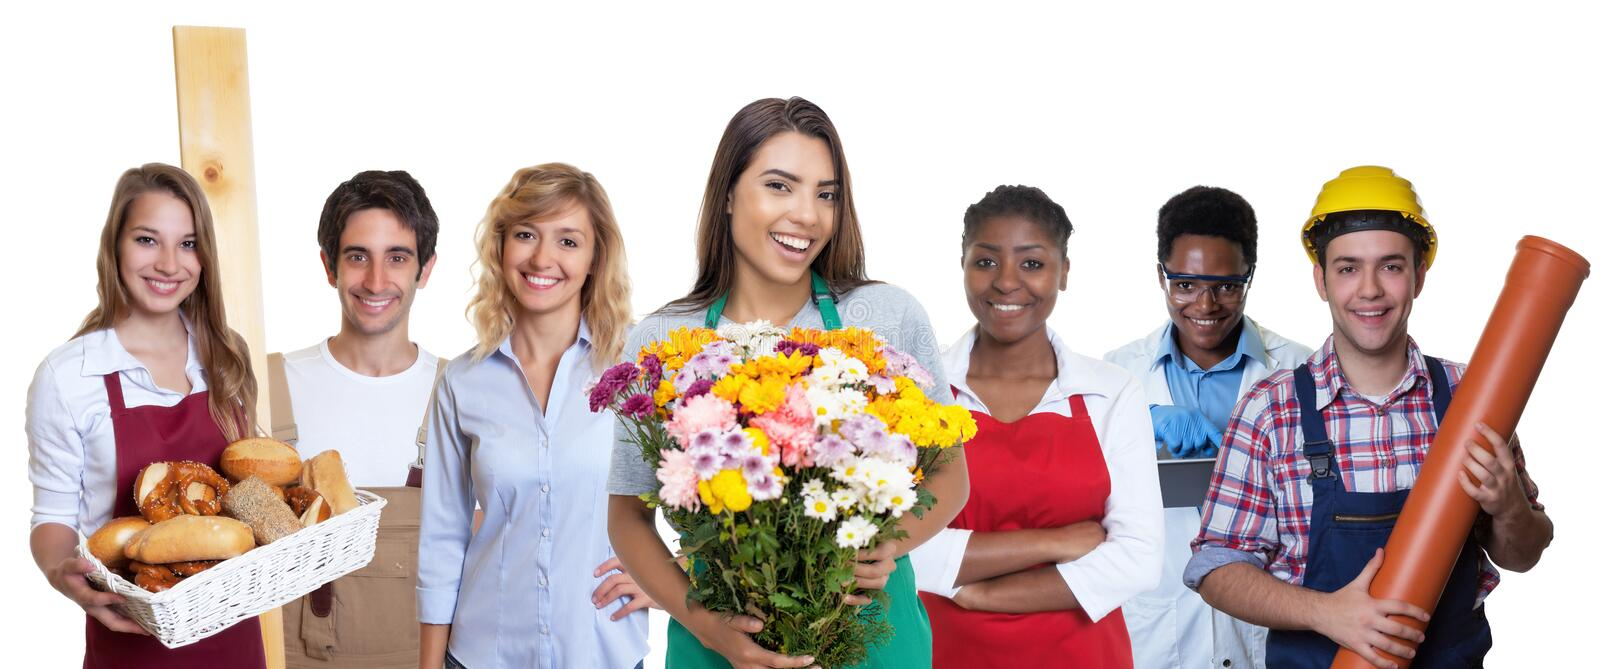 Laughing latin american flower seller with group of international apprentices stock photography